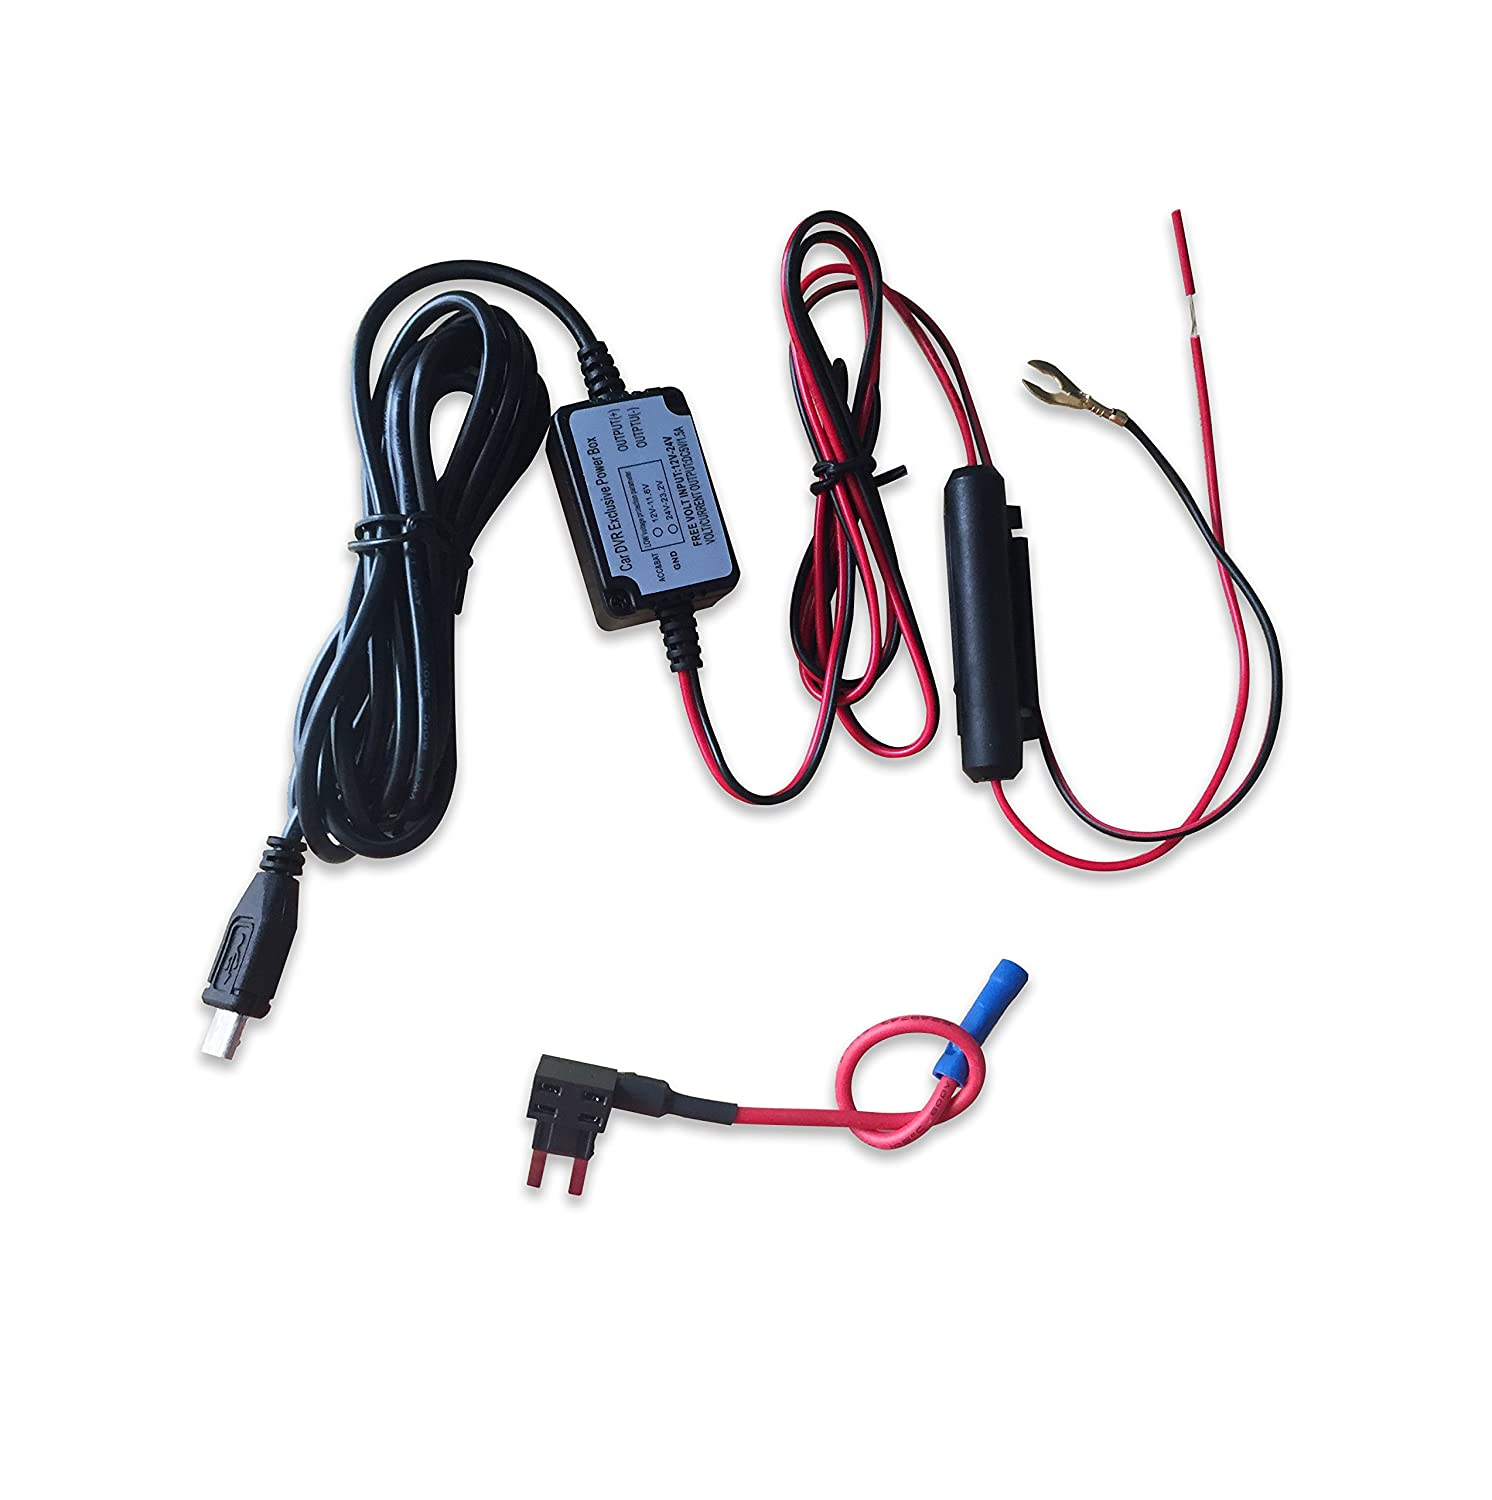 Wocst Car Camera Hard Wire Kit With Micro USB Direct Hardwire Car Charger Cable Kit For HD PRO & All Micro USB Dashboard Camera Power Supply Car Charger GPS Car DVR Power Box